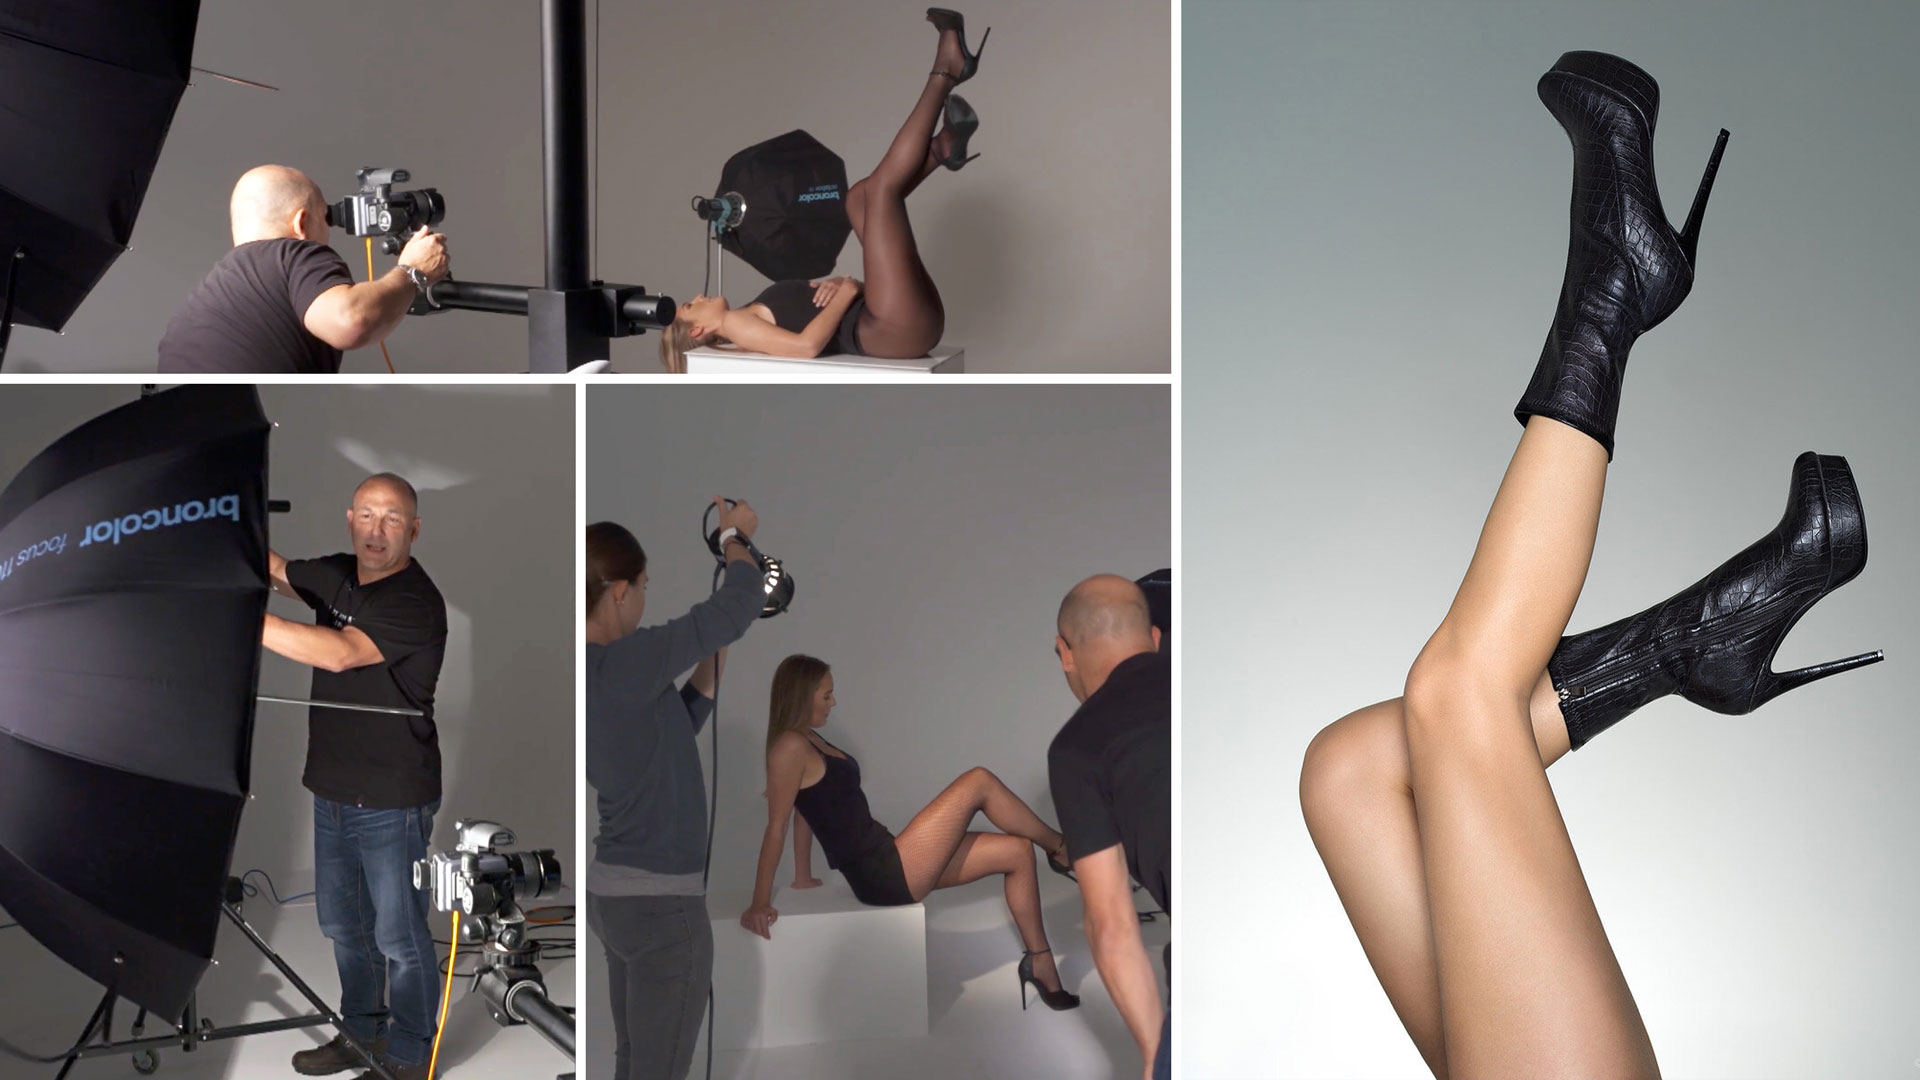 How To Photograph Legs